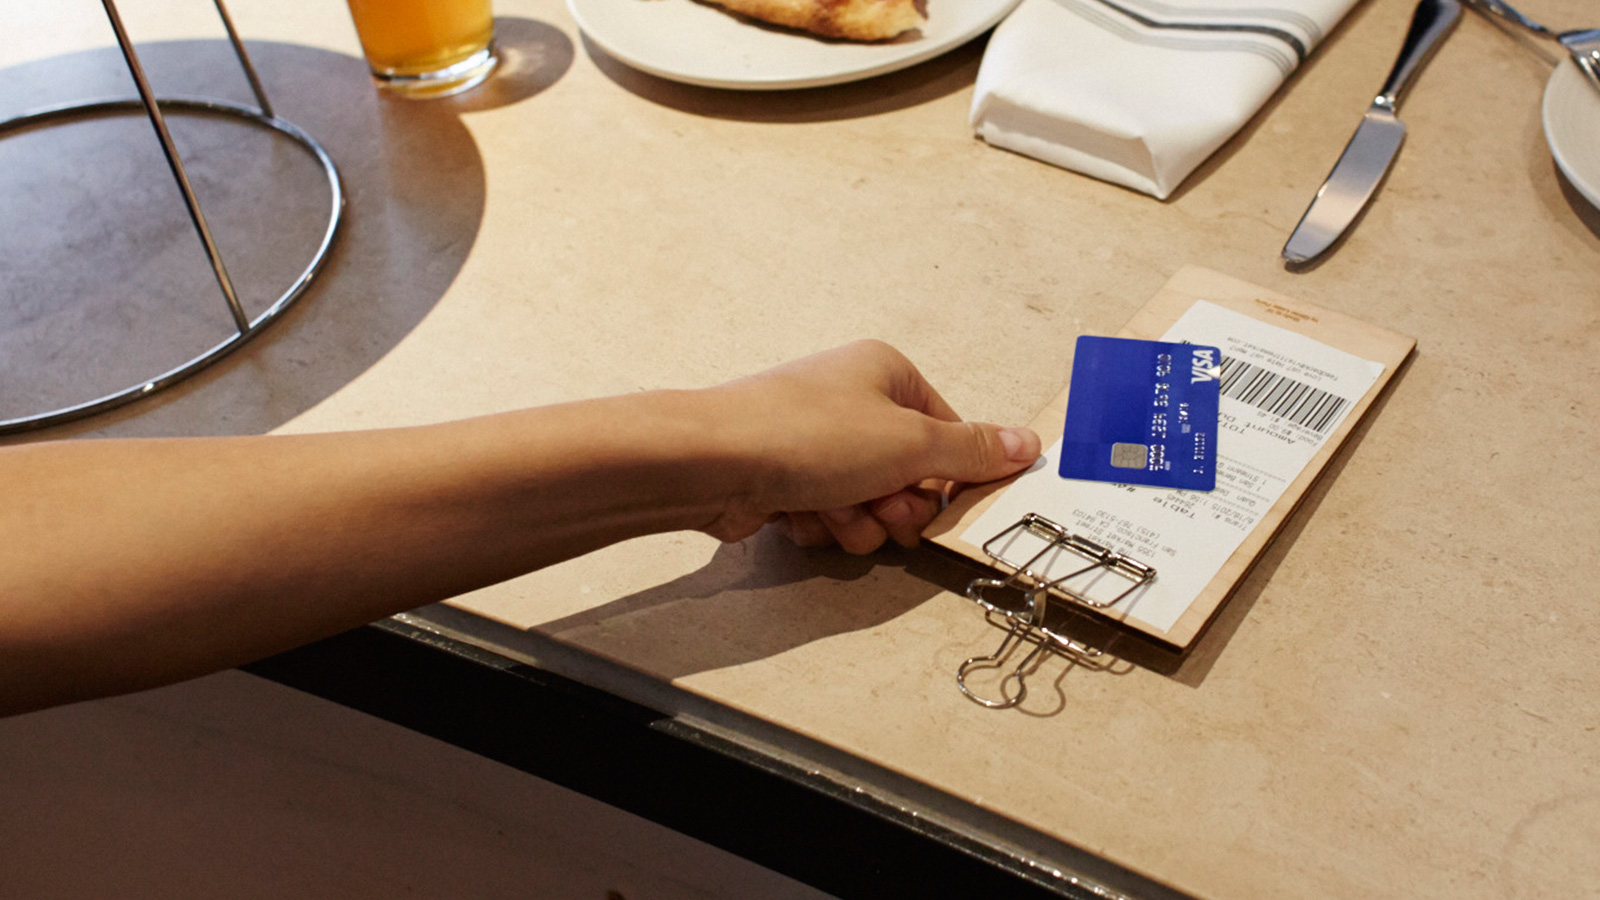 Paying bill with Visa card